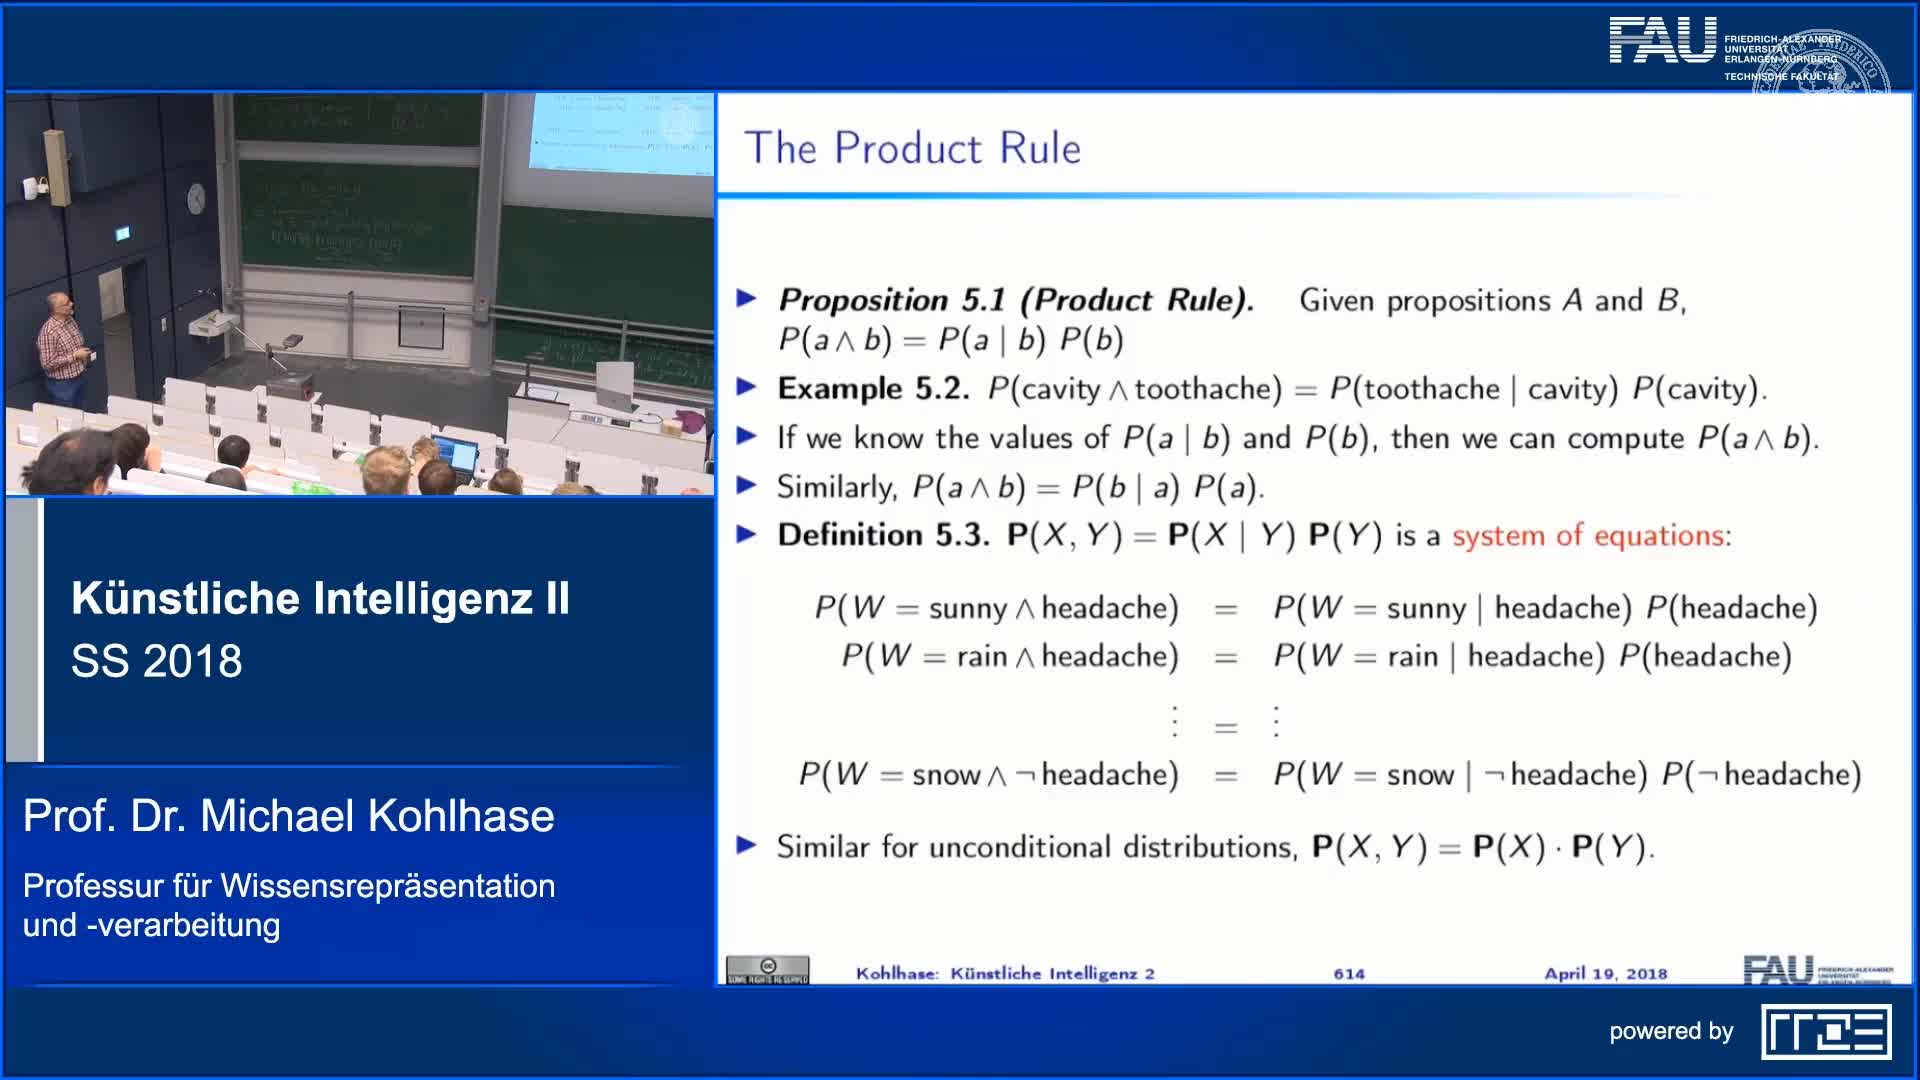 20.5. Basic Probabilistic Reasoning Methods preview image